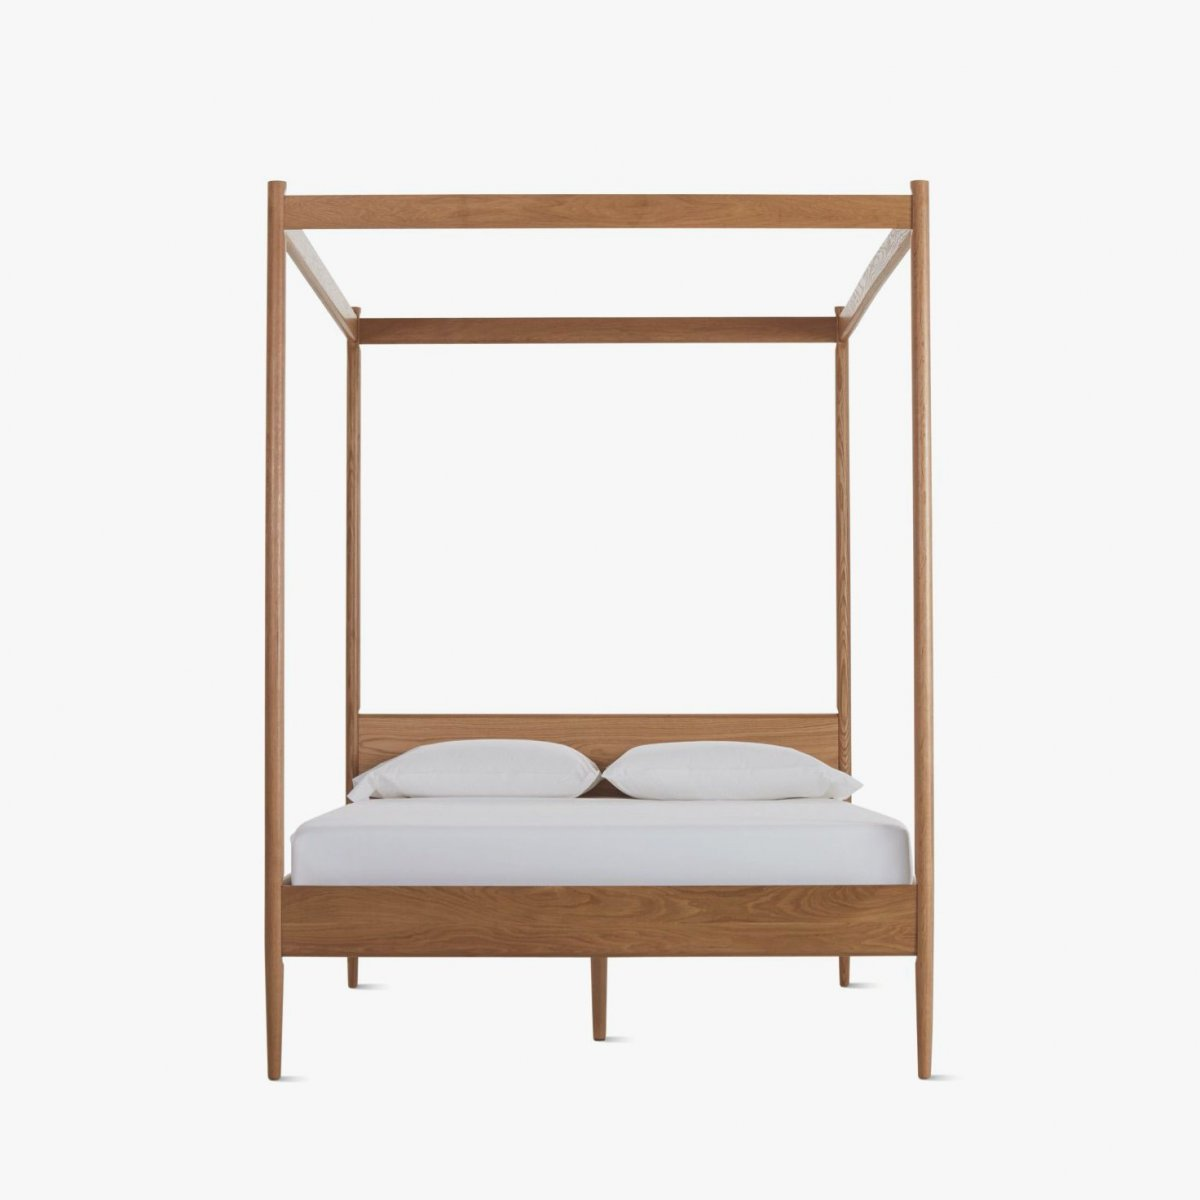 Cove Canopy Bed, oak, front view.